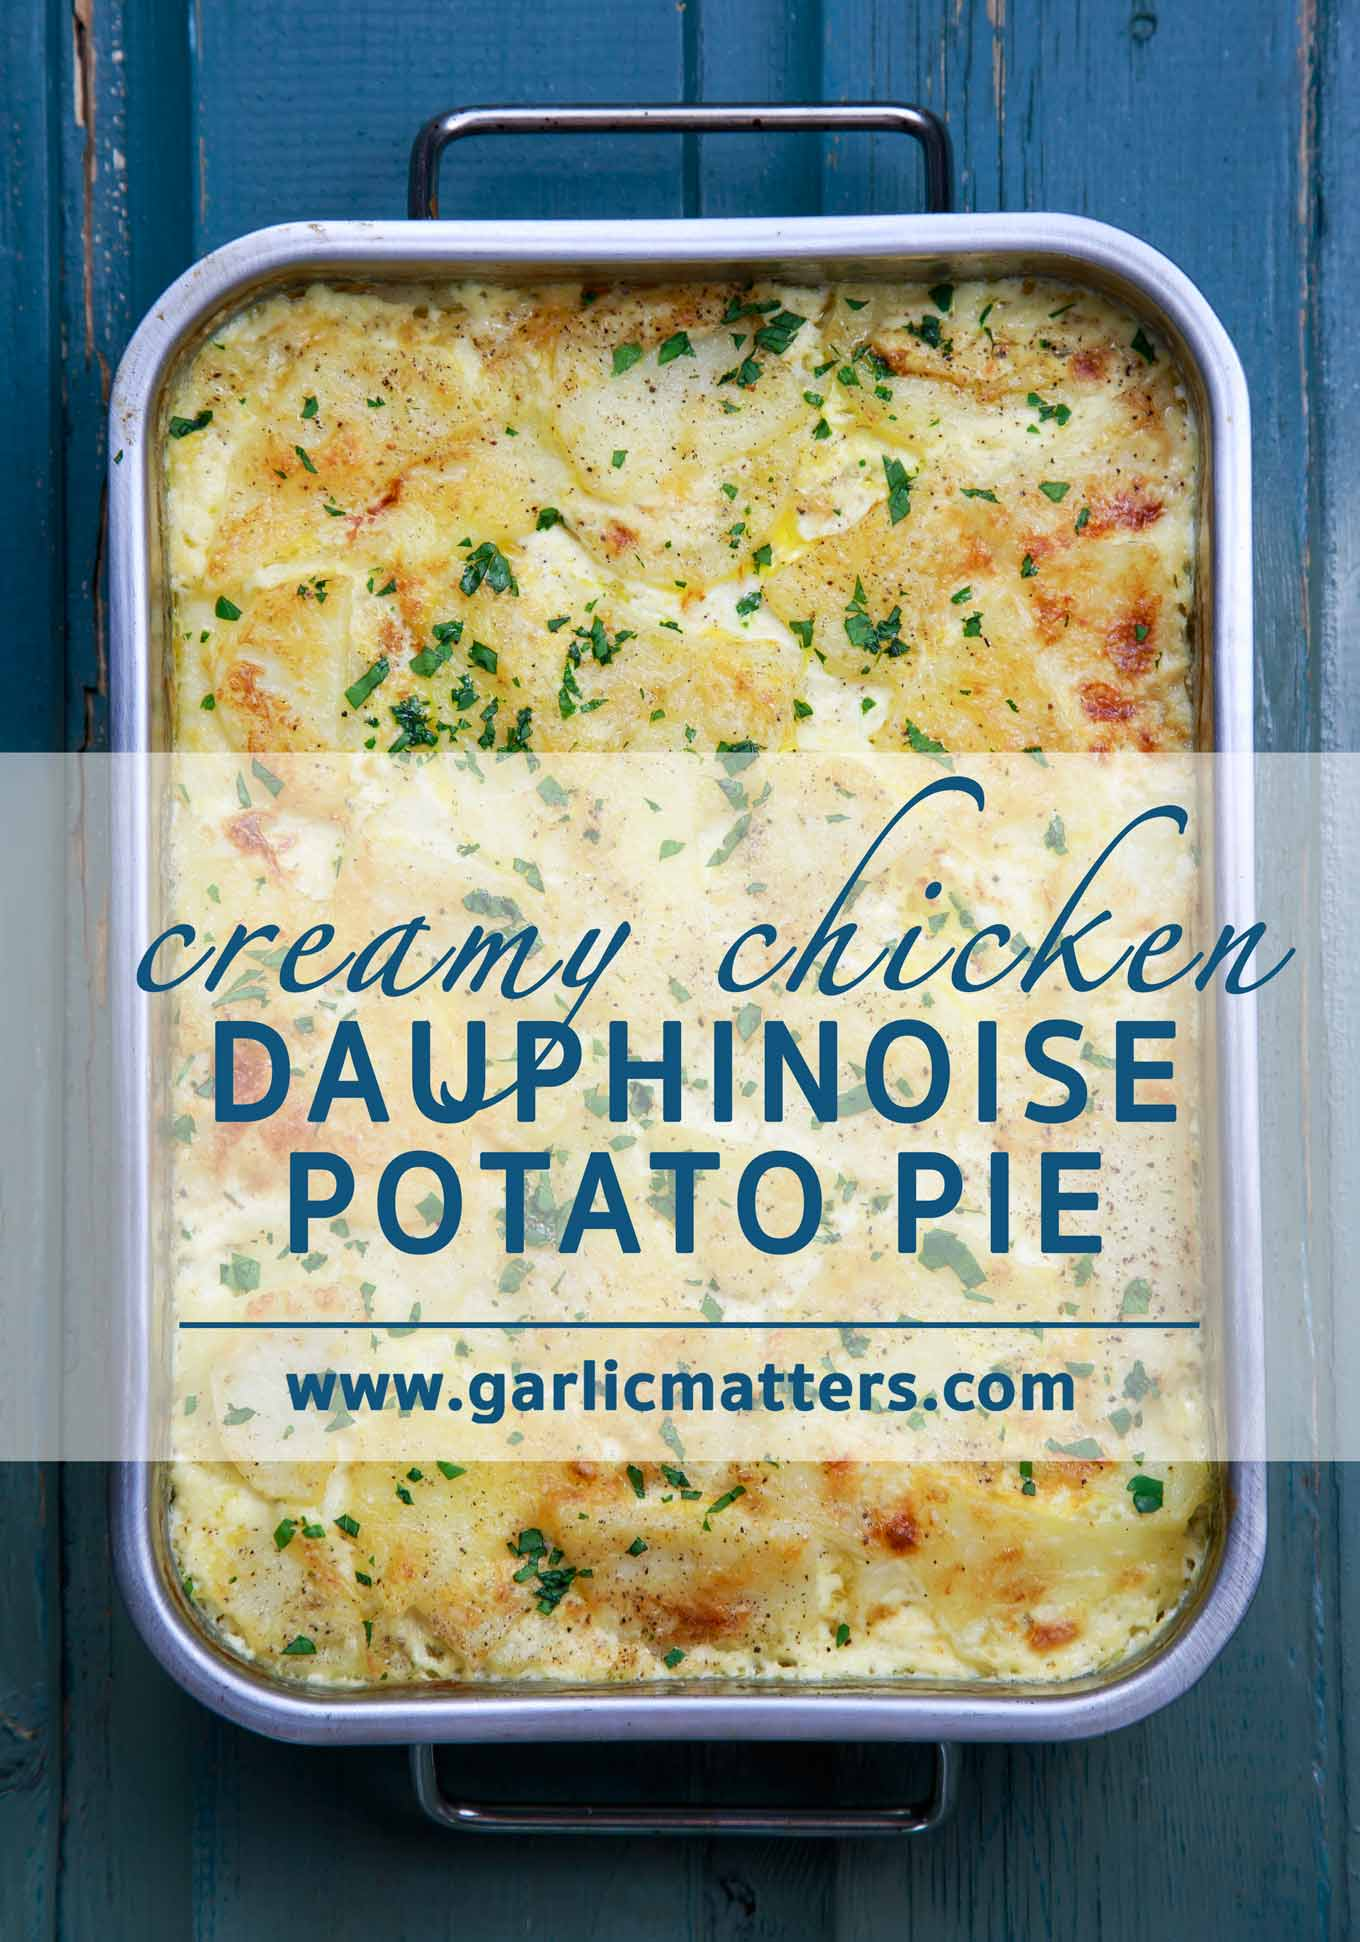 Creamy Chicken Dauphinoise Potato Pie Bake is what Autumn, home-cooked meals are all about. Delicious, simple, comfort food style recipe for 6.